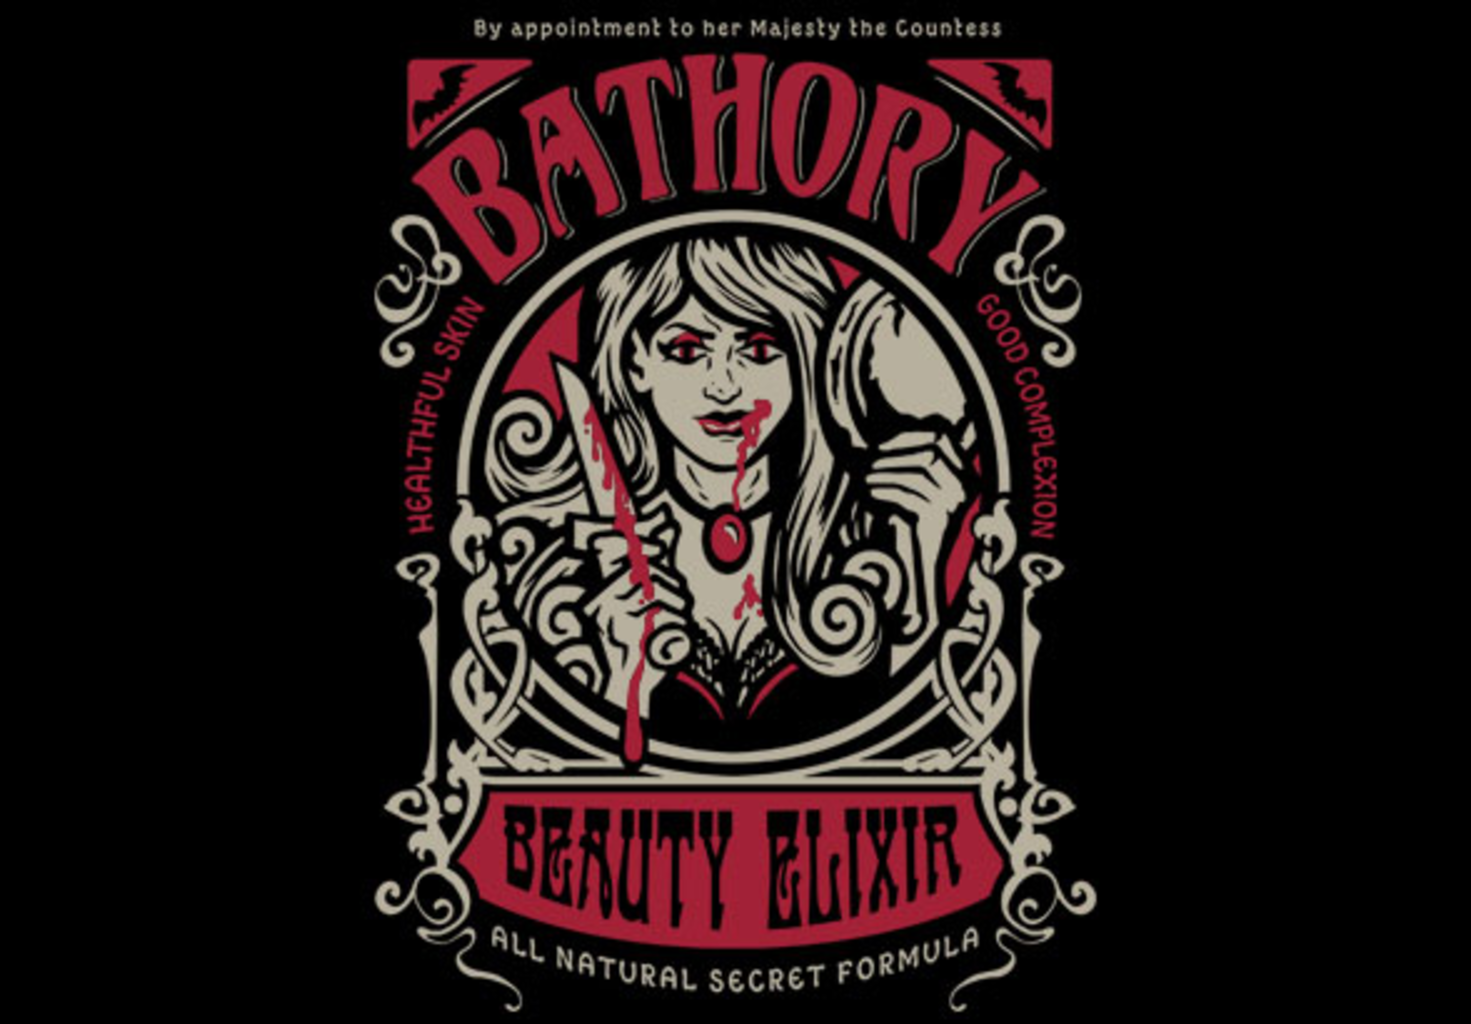 teeVillain: Bathory Beauty Elixir